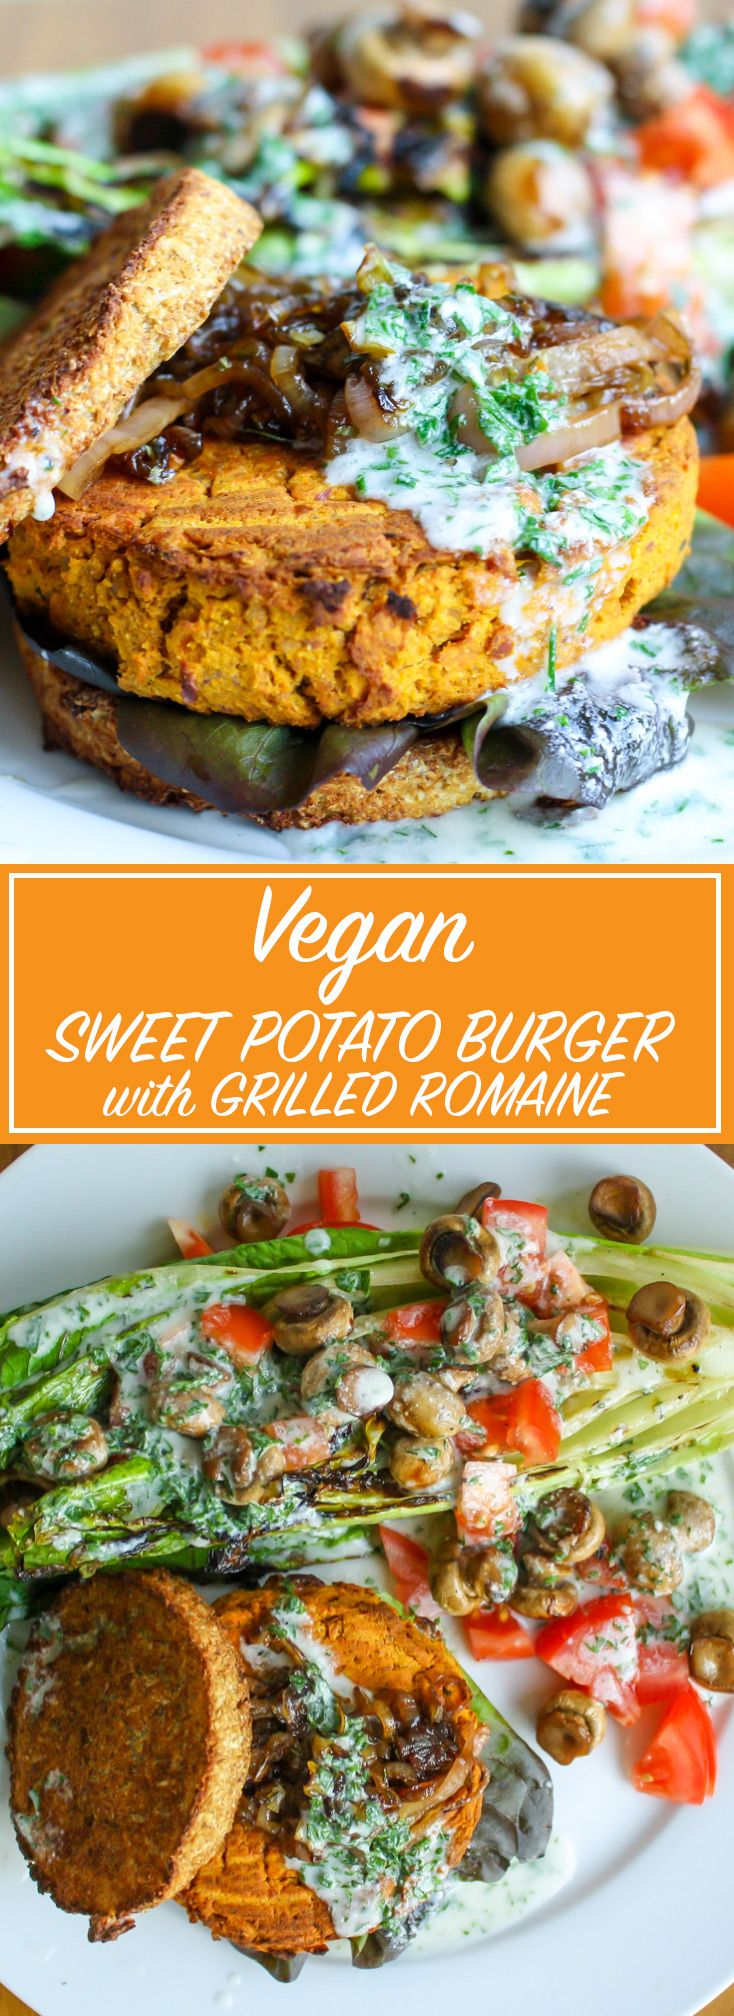 Vegan Sweet Potato Burger with Caramelized Shallots and Grilled Romaine Salad with Vegan Ranch Dressing. A perfect summer meal!